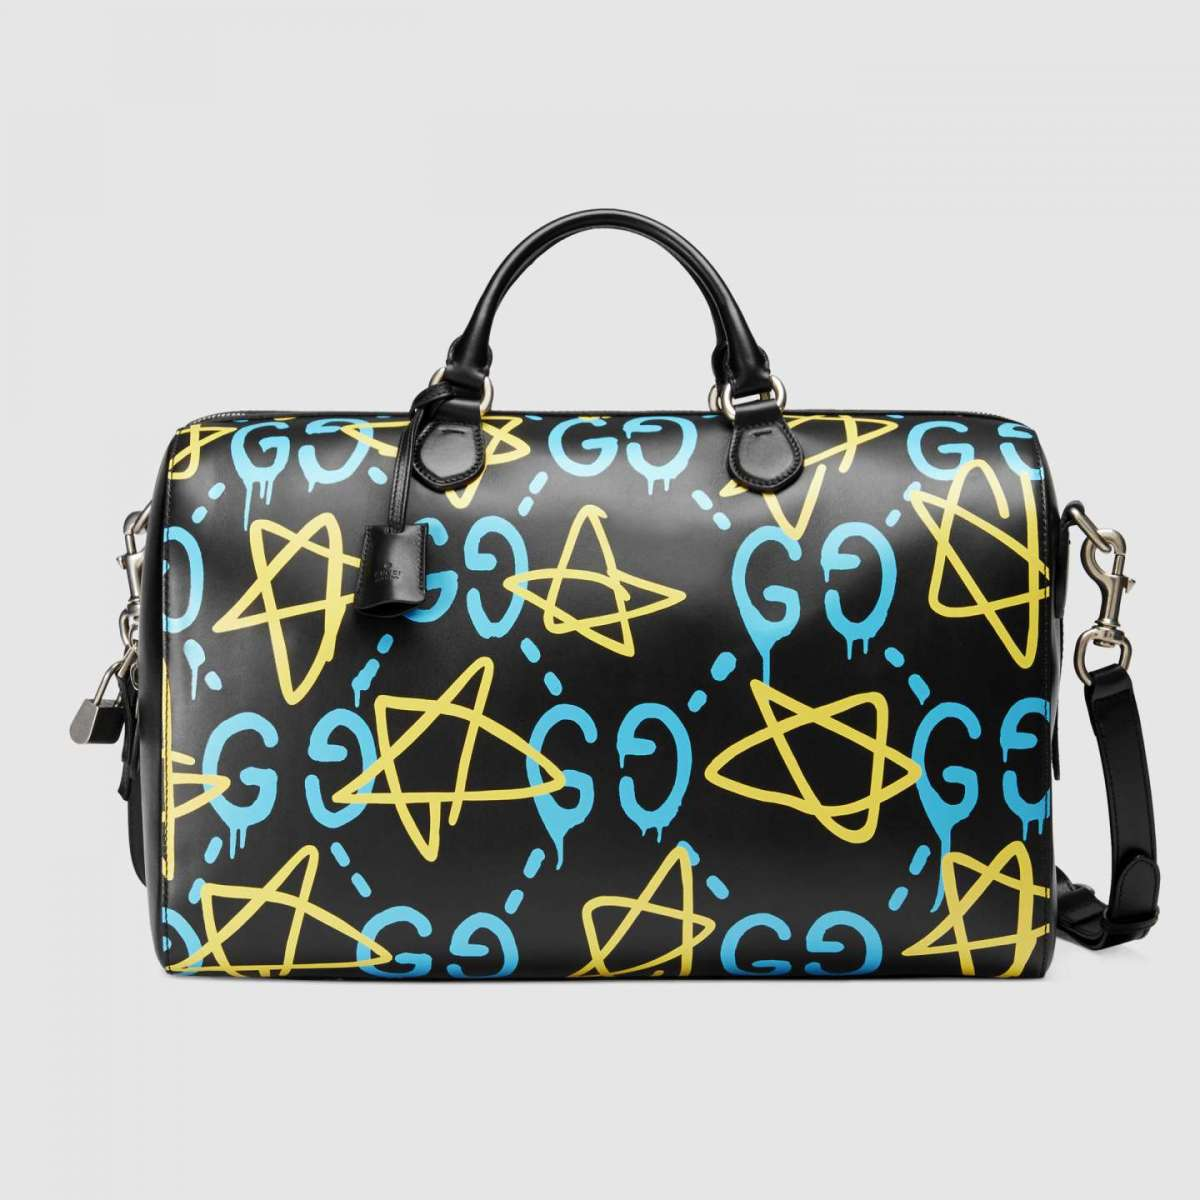 Bauletto Gucci Ghost